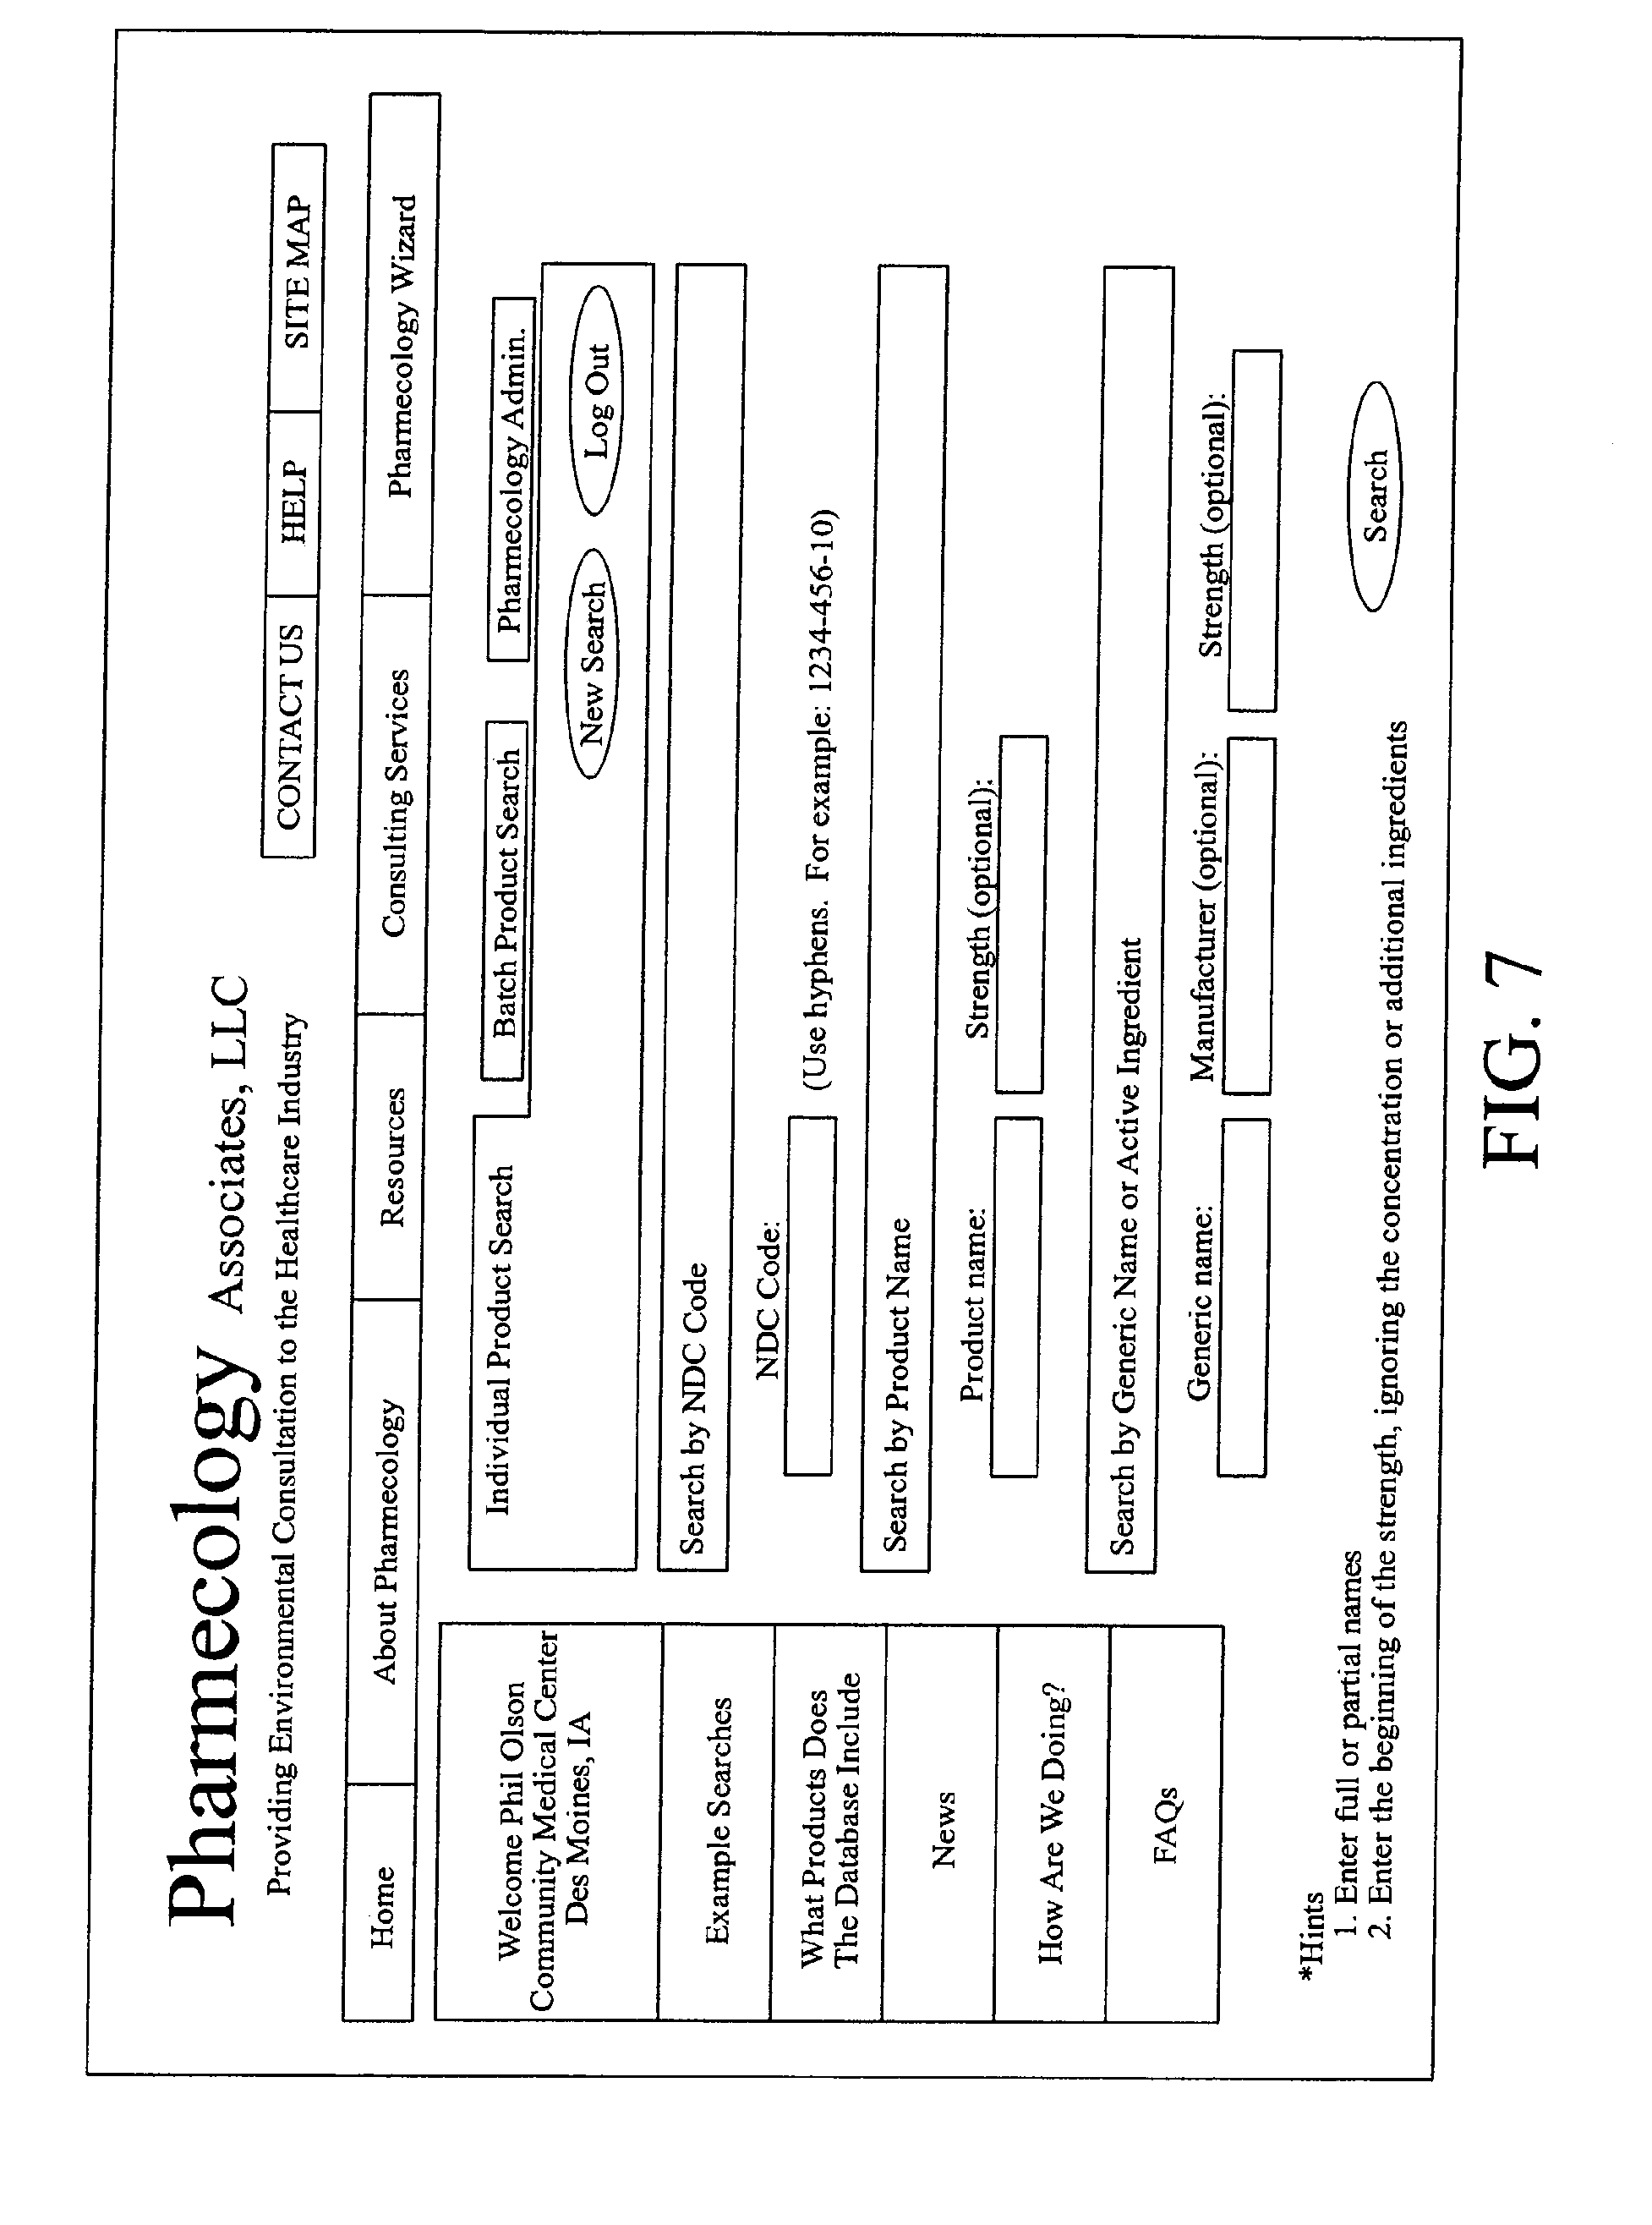 pharmaceutical patents